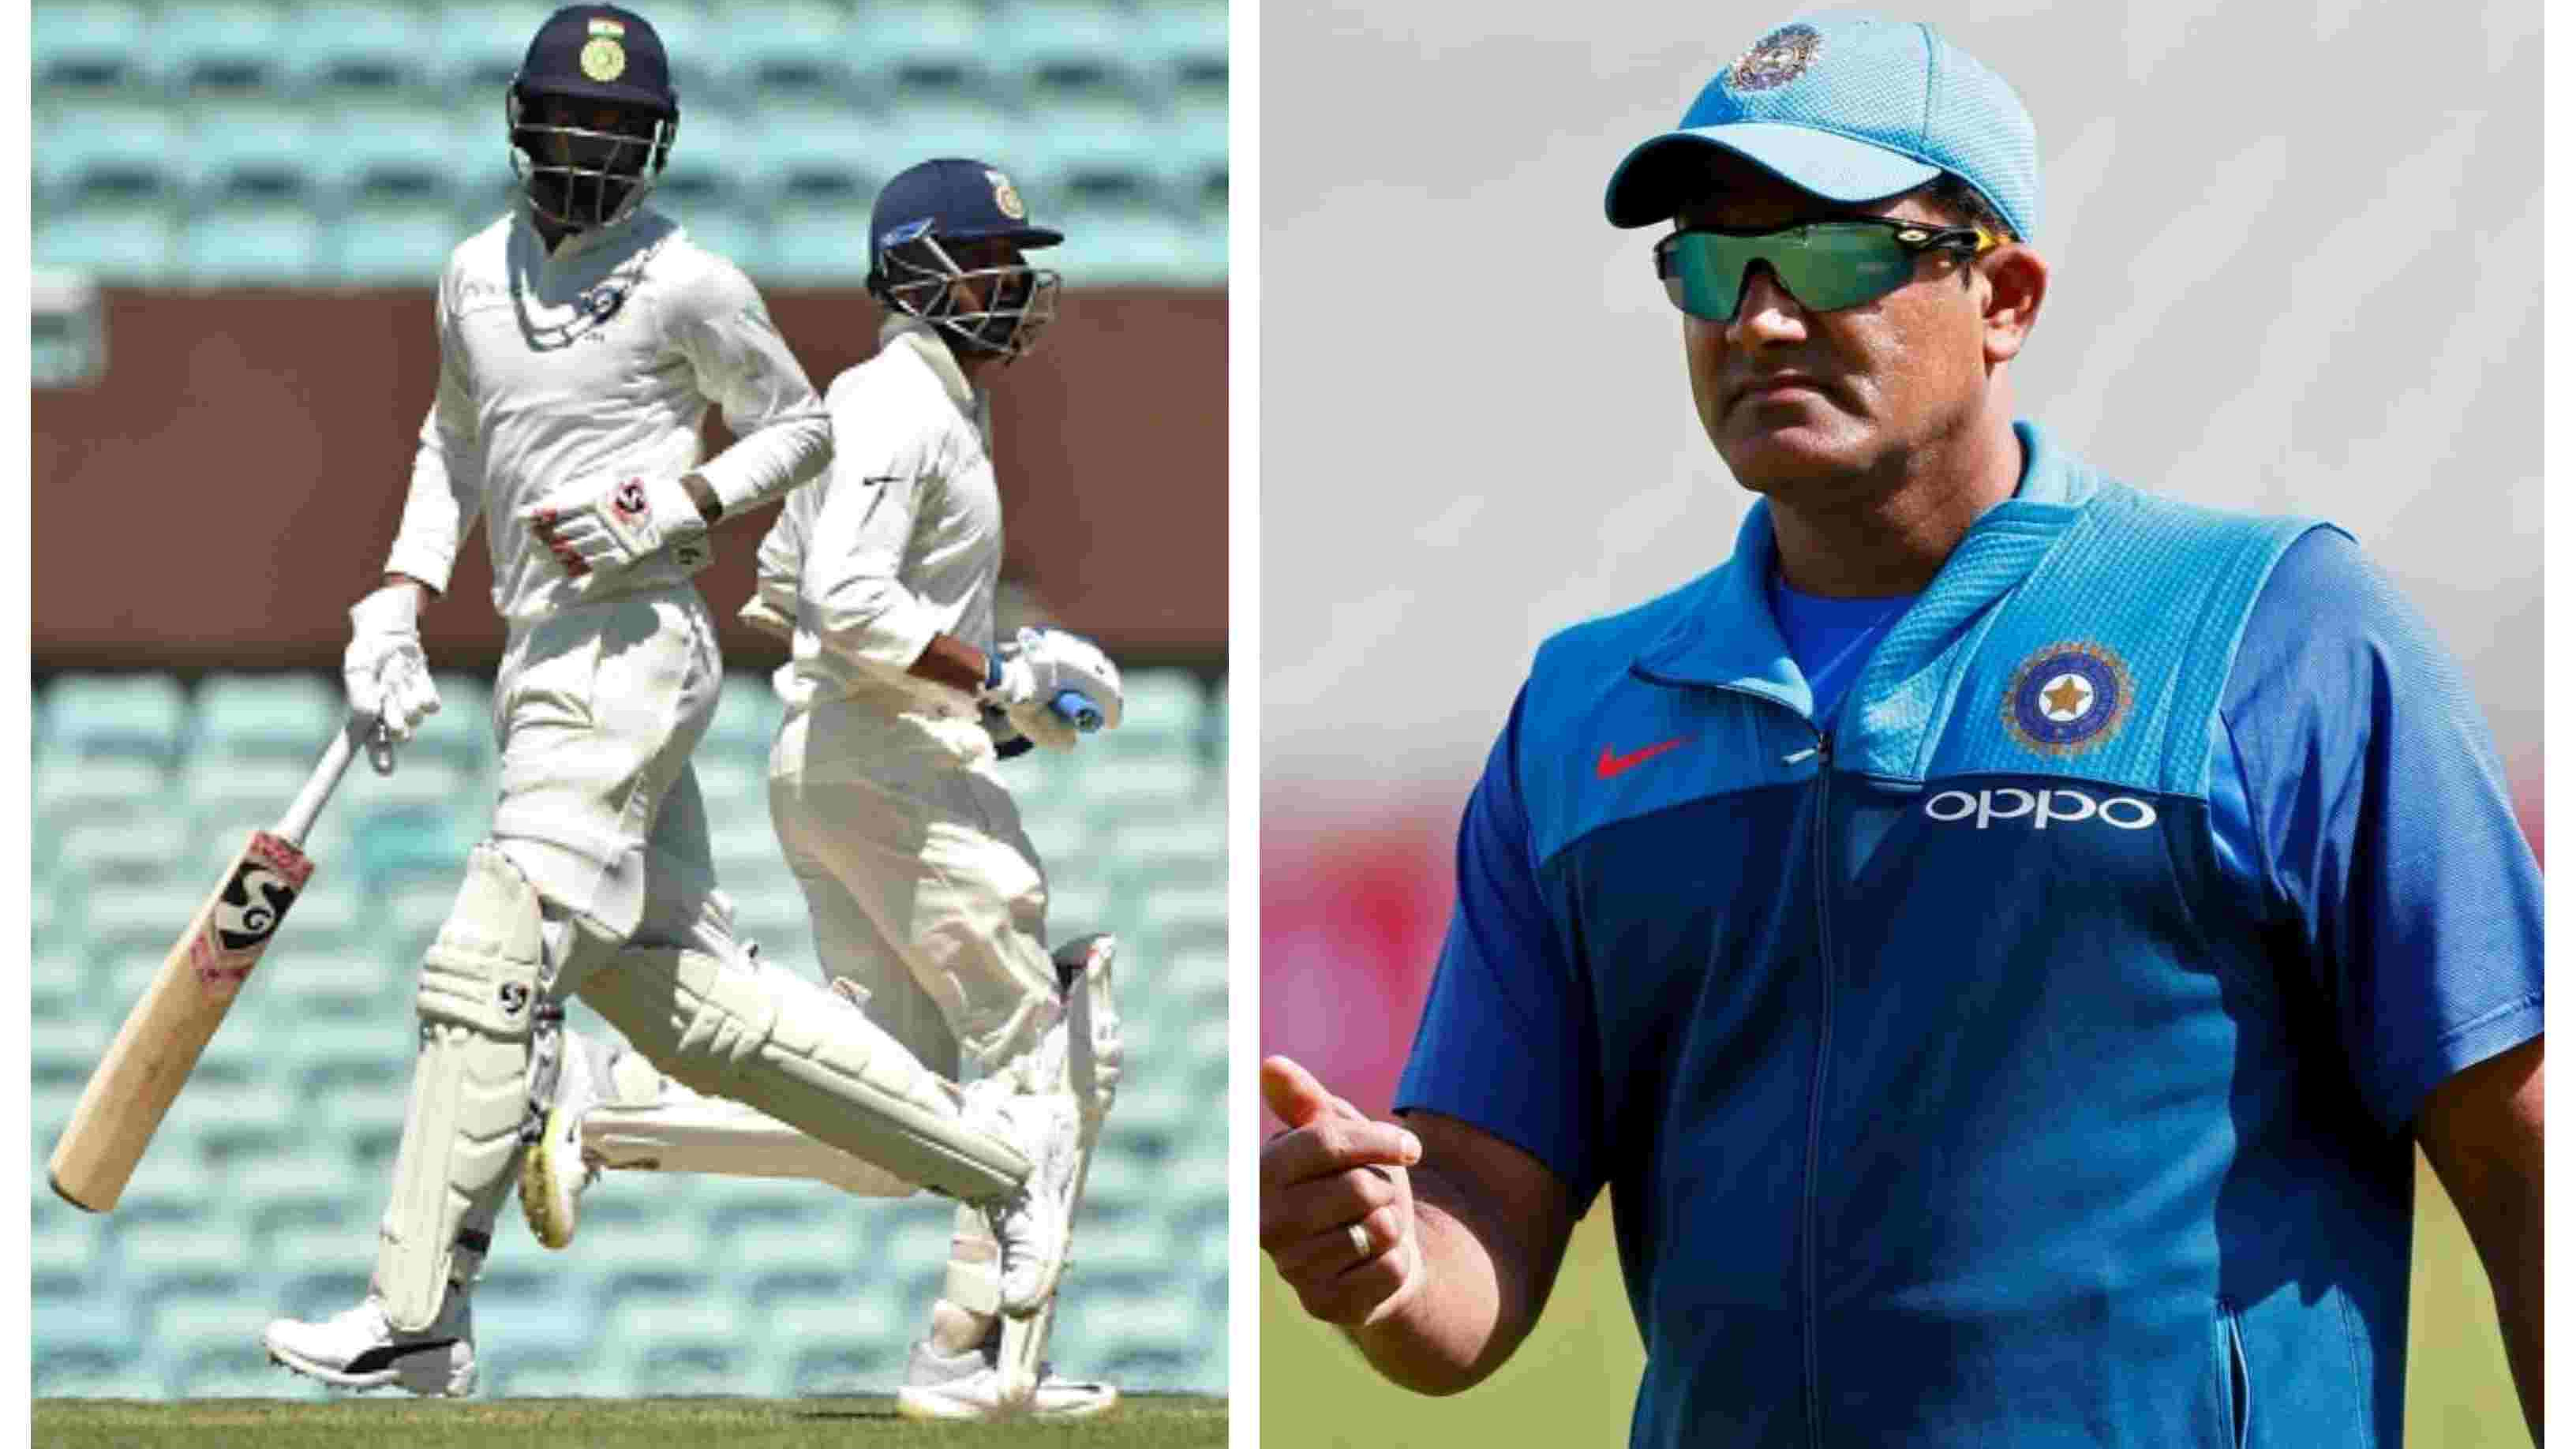 AUS v IND 2018-19: Anil Kumble urges Indian batsmen to be more disciplined in Perth Test